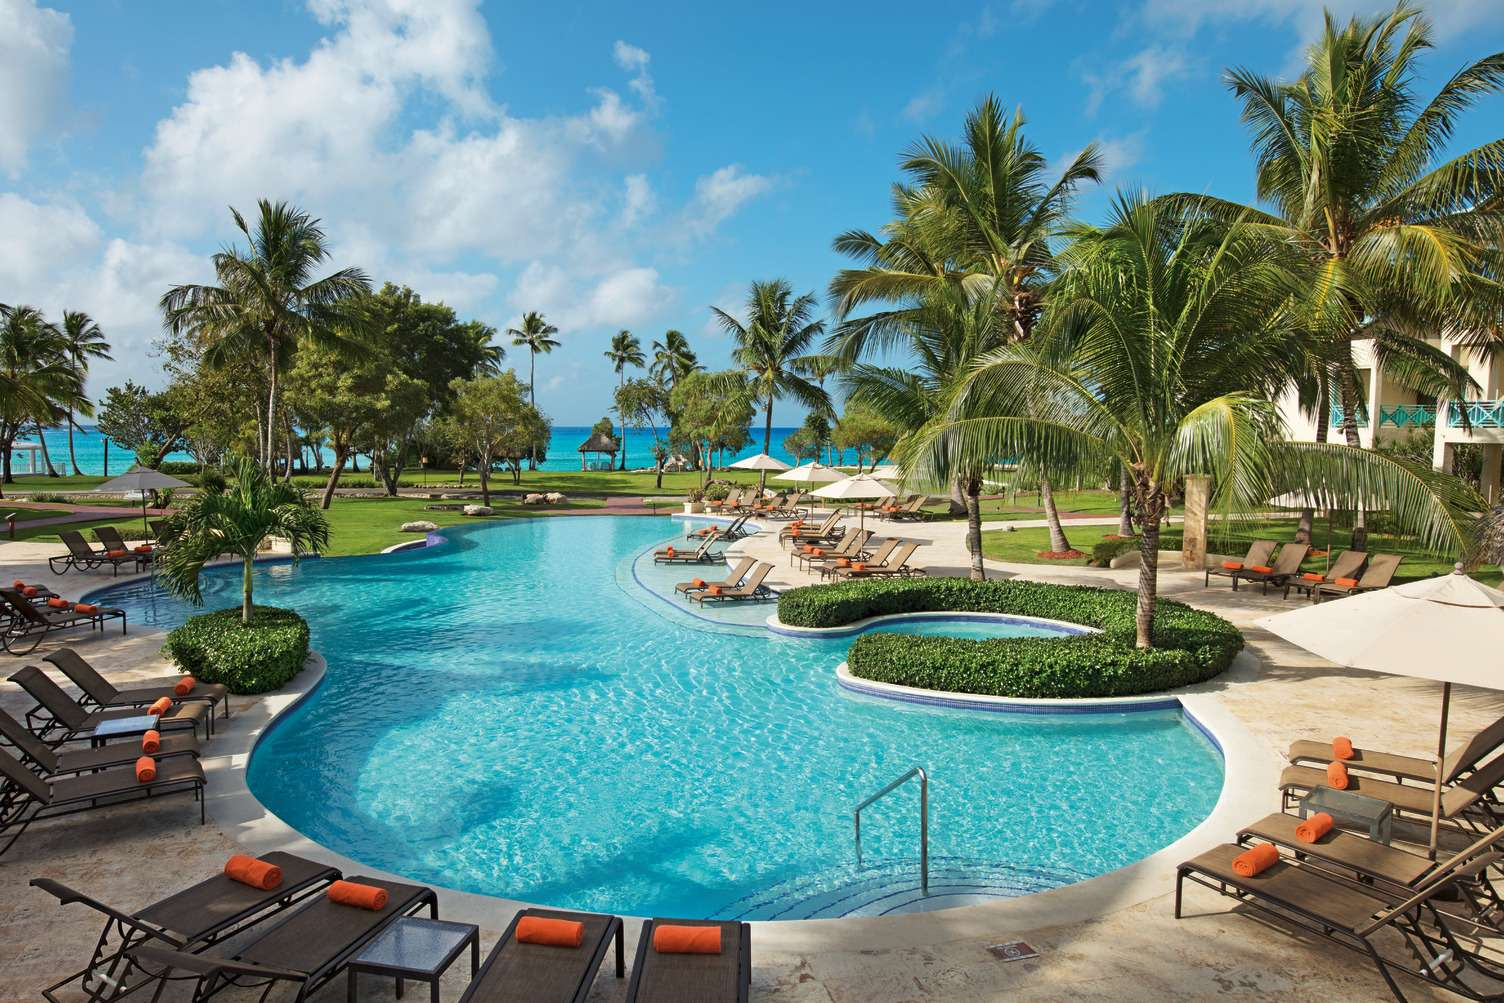 Image of Dreams La Romana Resort & Spa, Punta Cana, Dom Rep